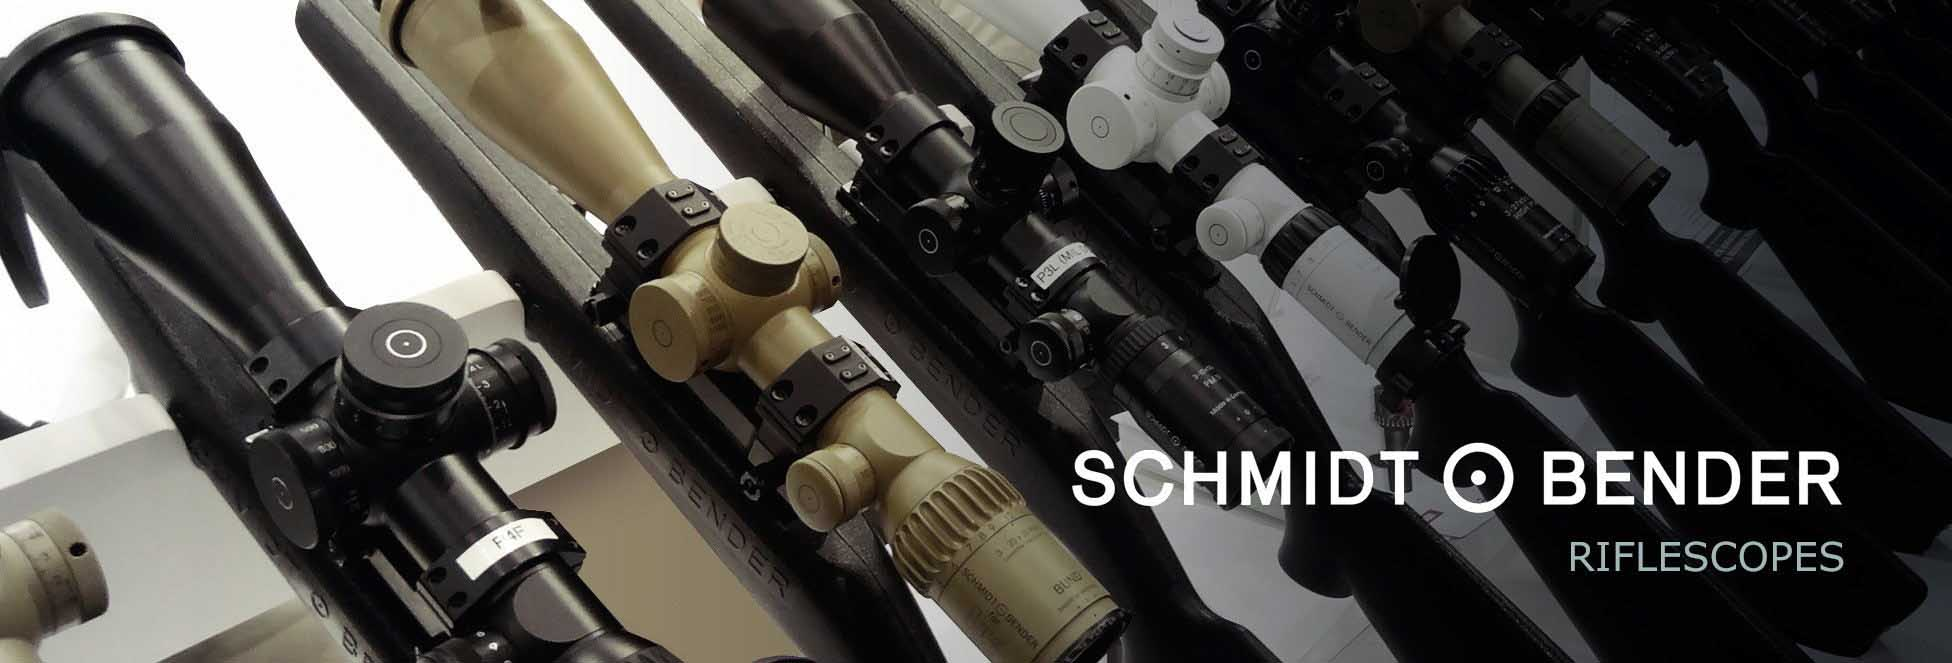 Schmidt & Bender Products